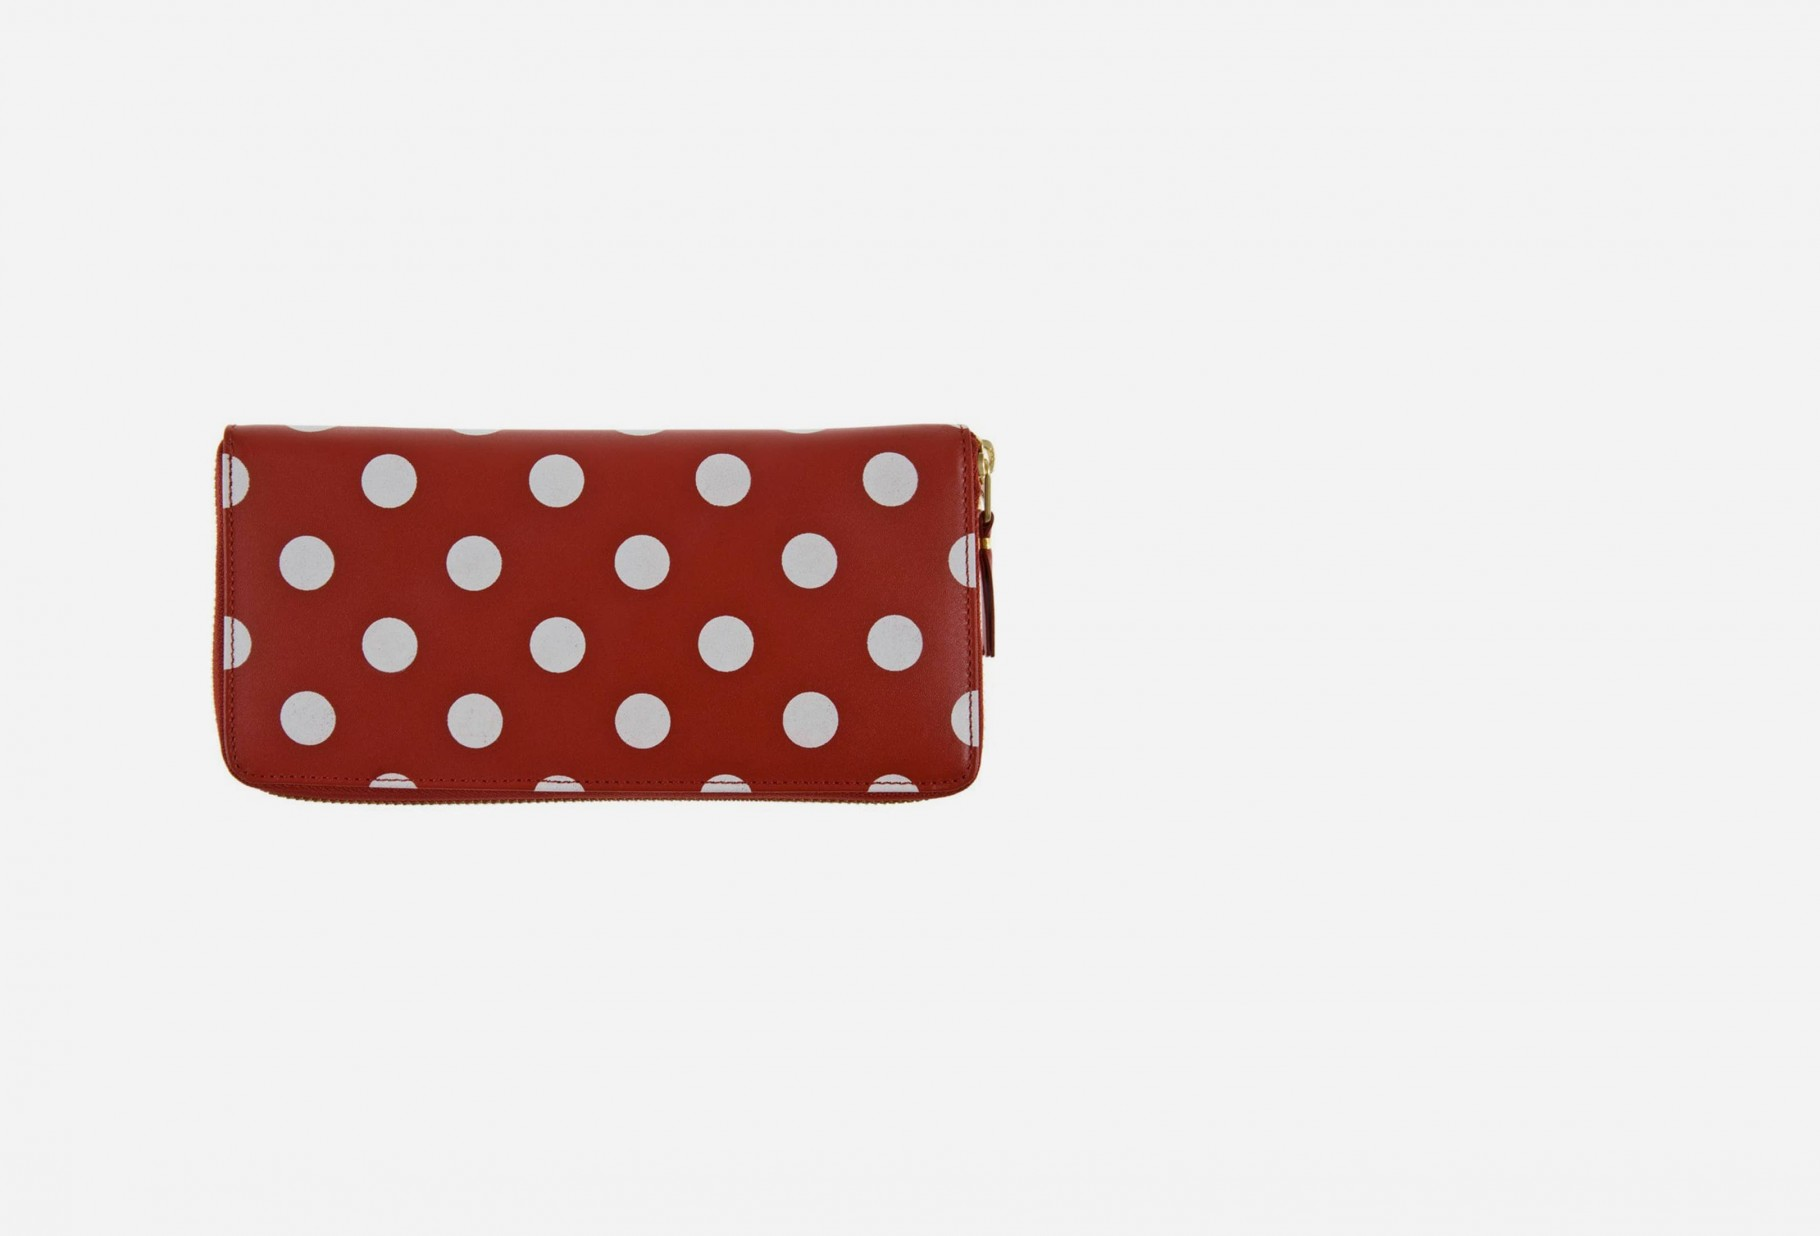 CDG WALLETS / Cdg polka dots sa0110pd Red